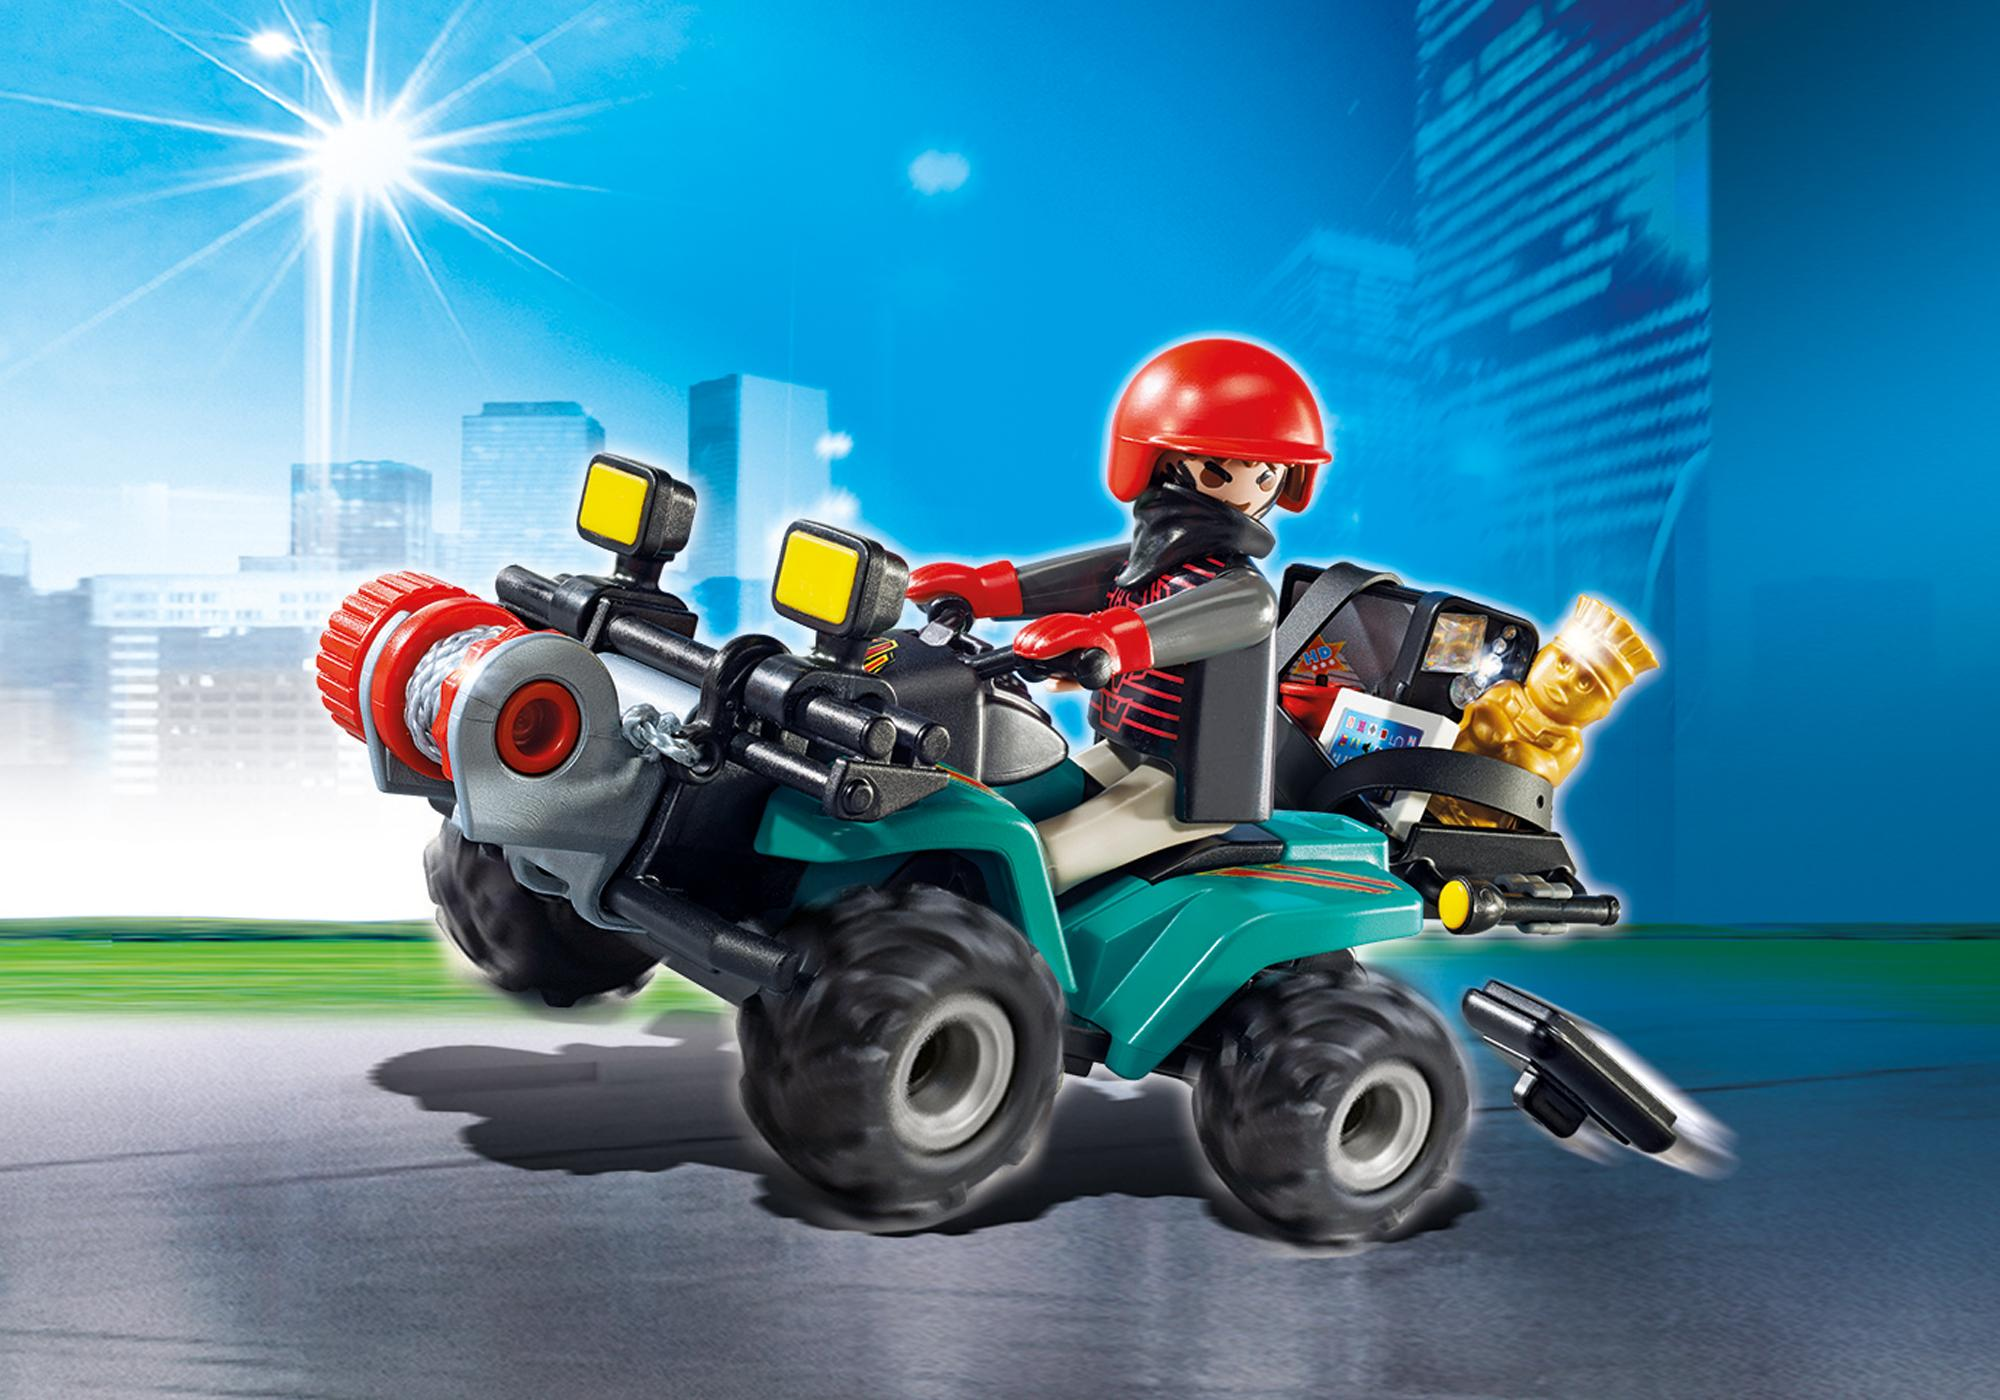 http://media.playmobil.com/i/playmobil/6879_product_detail